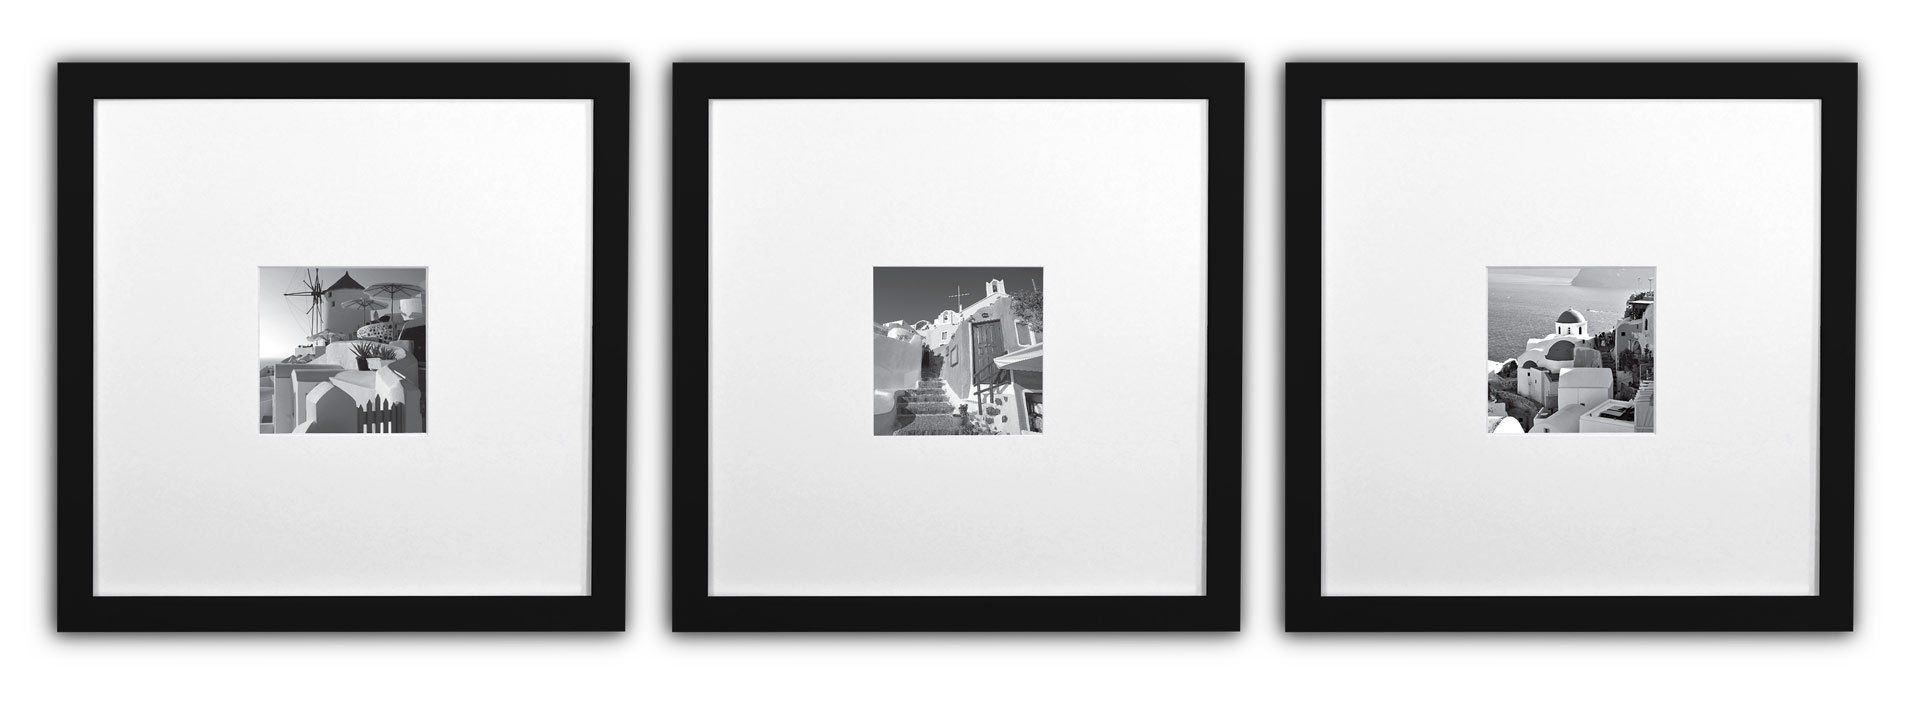 Golden State Art Smartphone Instagram Frames Collection Set Of 3 11x11 Inch Square Photo Wood Frames With White P State Art Frame Collection Instagram Frame